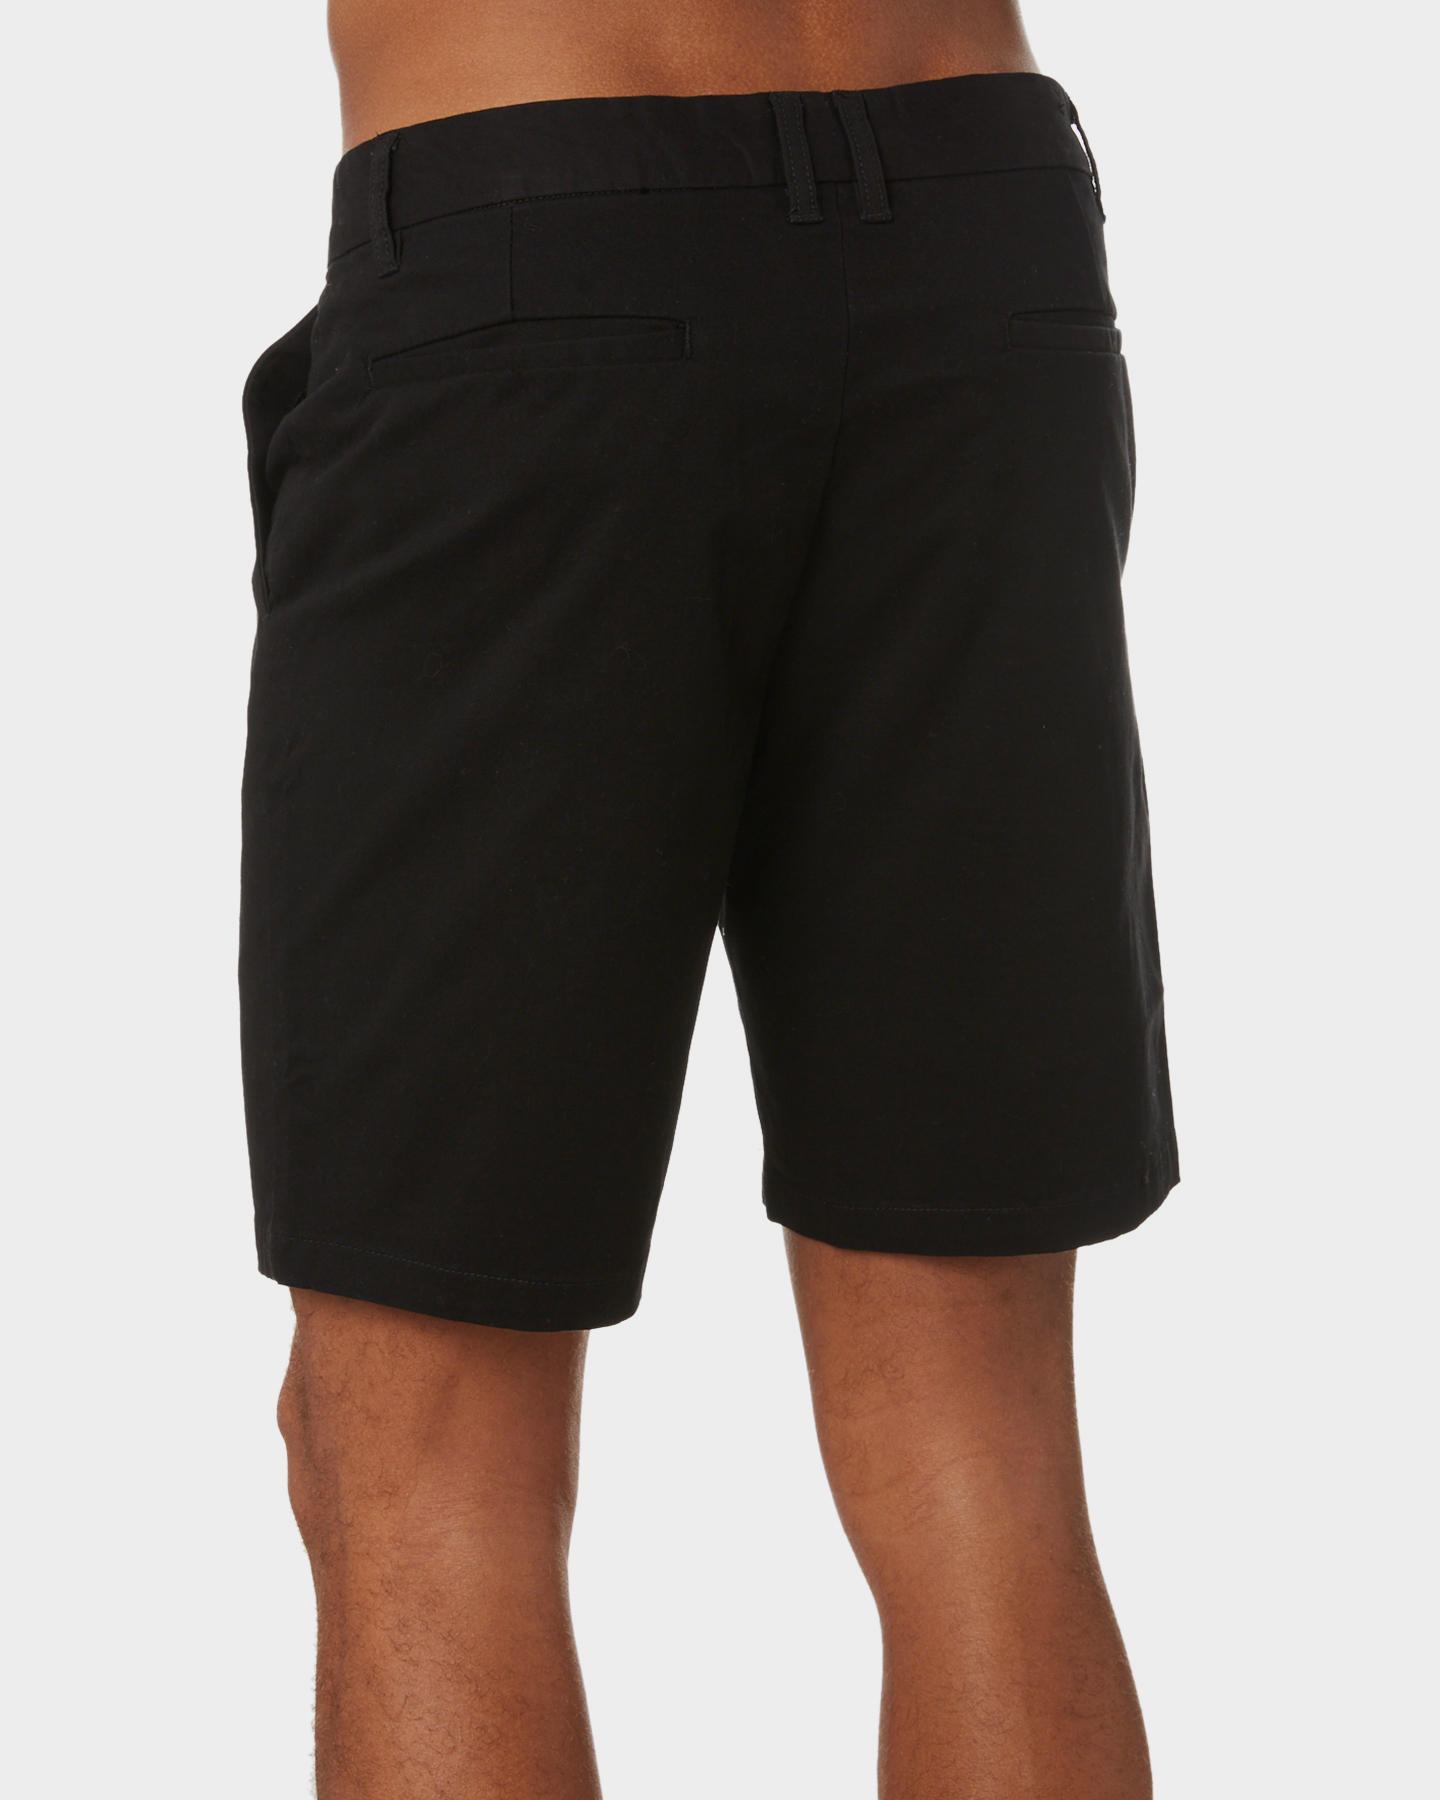 New-Swell-Men-039-s-Dandy-Mens-Chino-Short-Cotton-Fitted-Elastane-Blue thumbnail 8